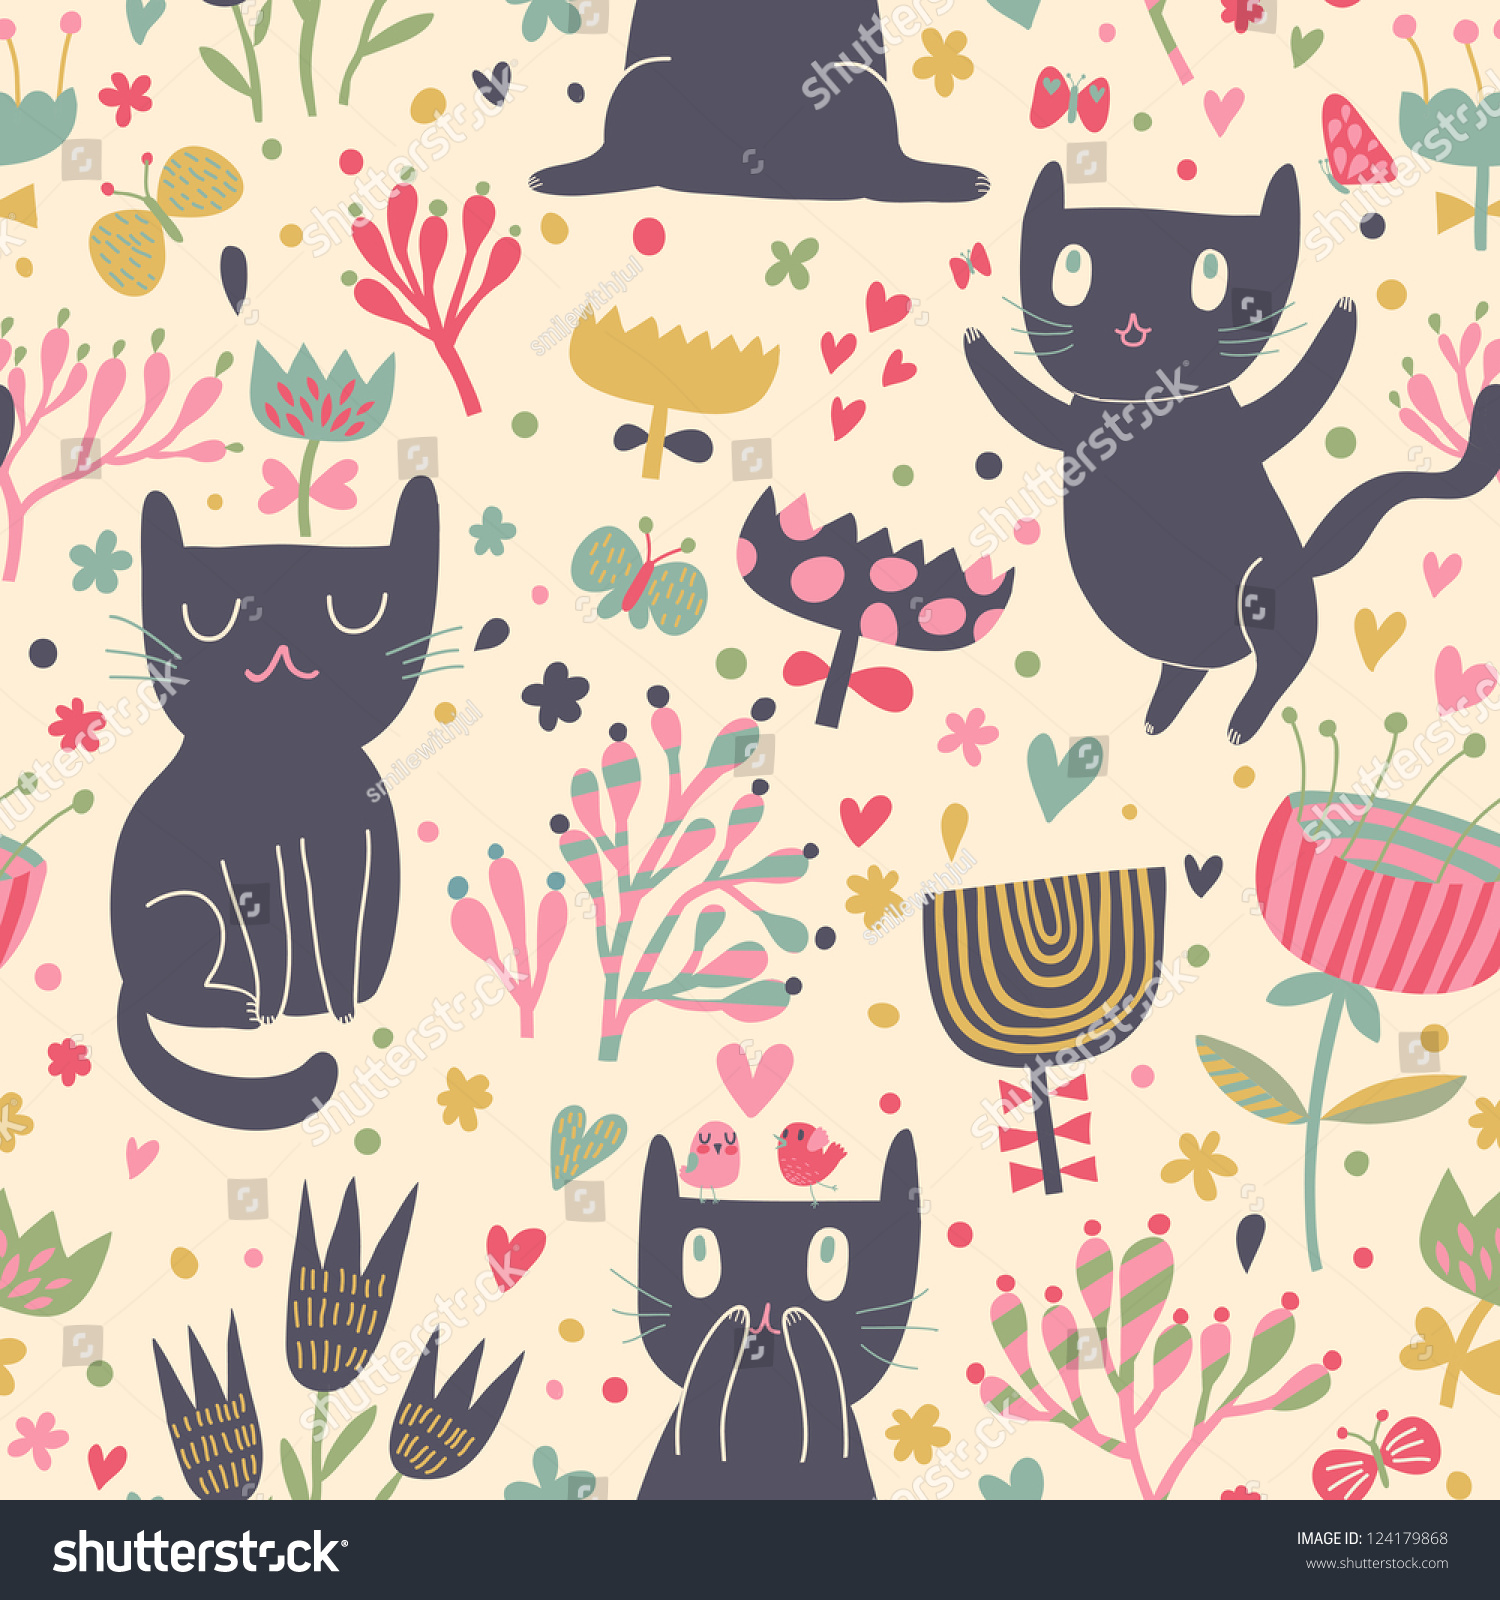 Funny cats cartoon style sweet chilrends stock vector - Cartoon cat background ...